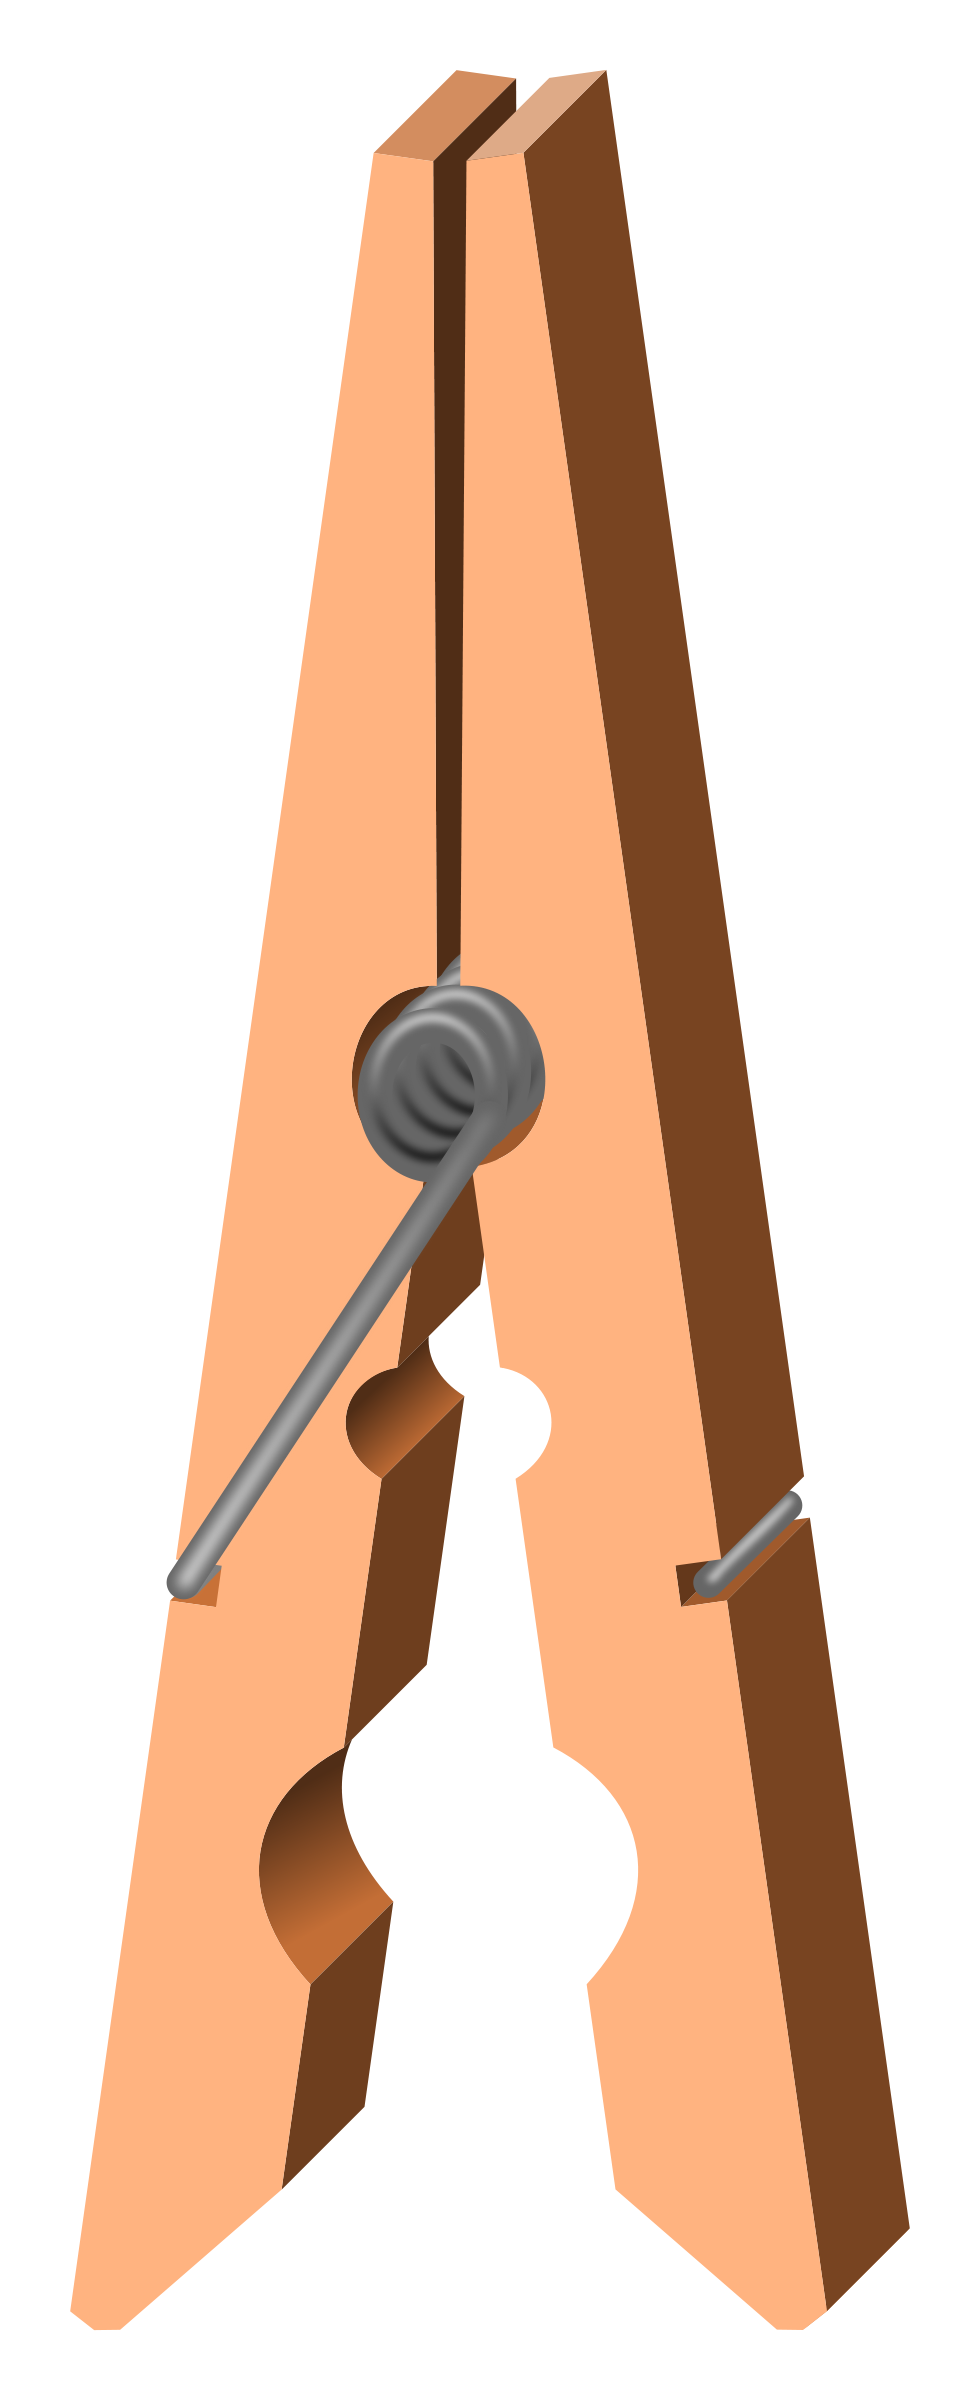 Clothes Pin Clipart - Clipart Suggest